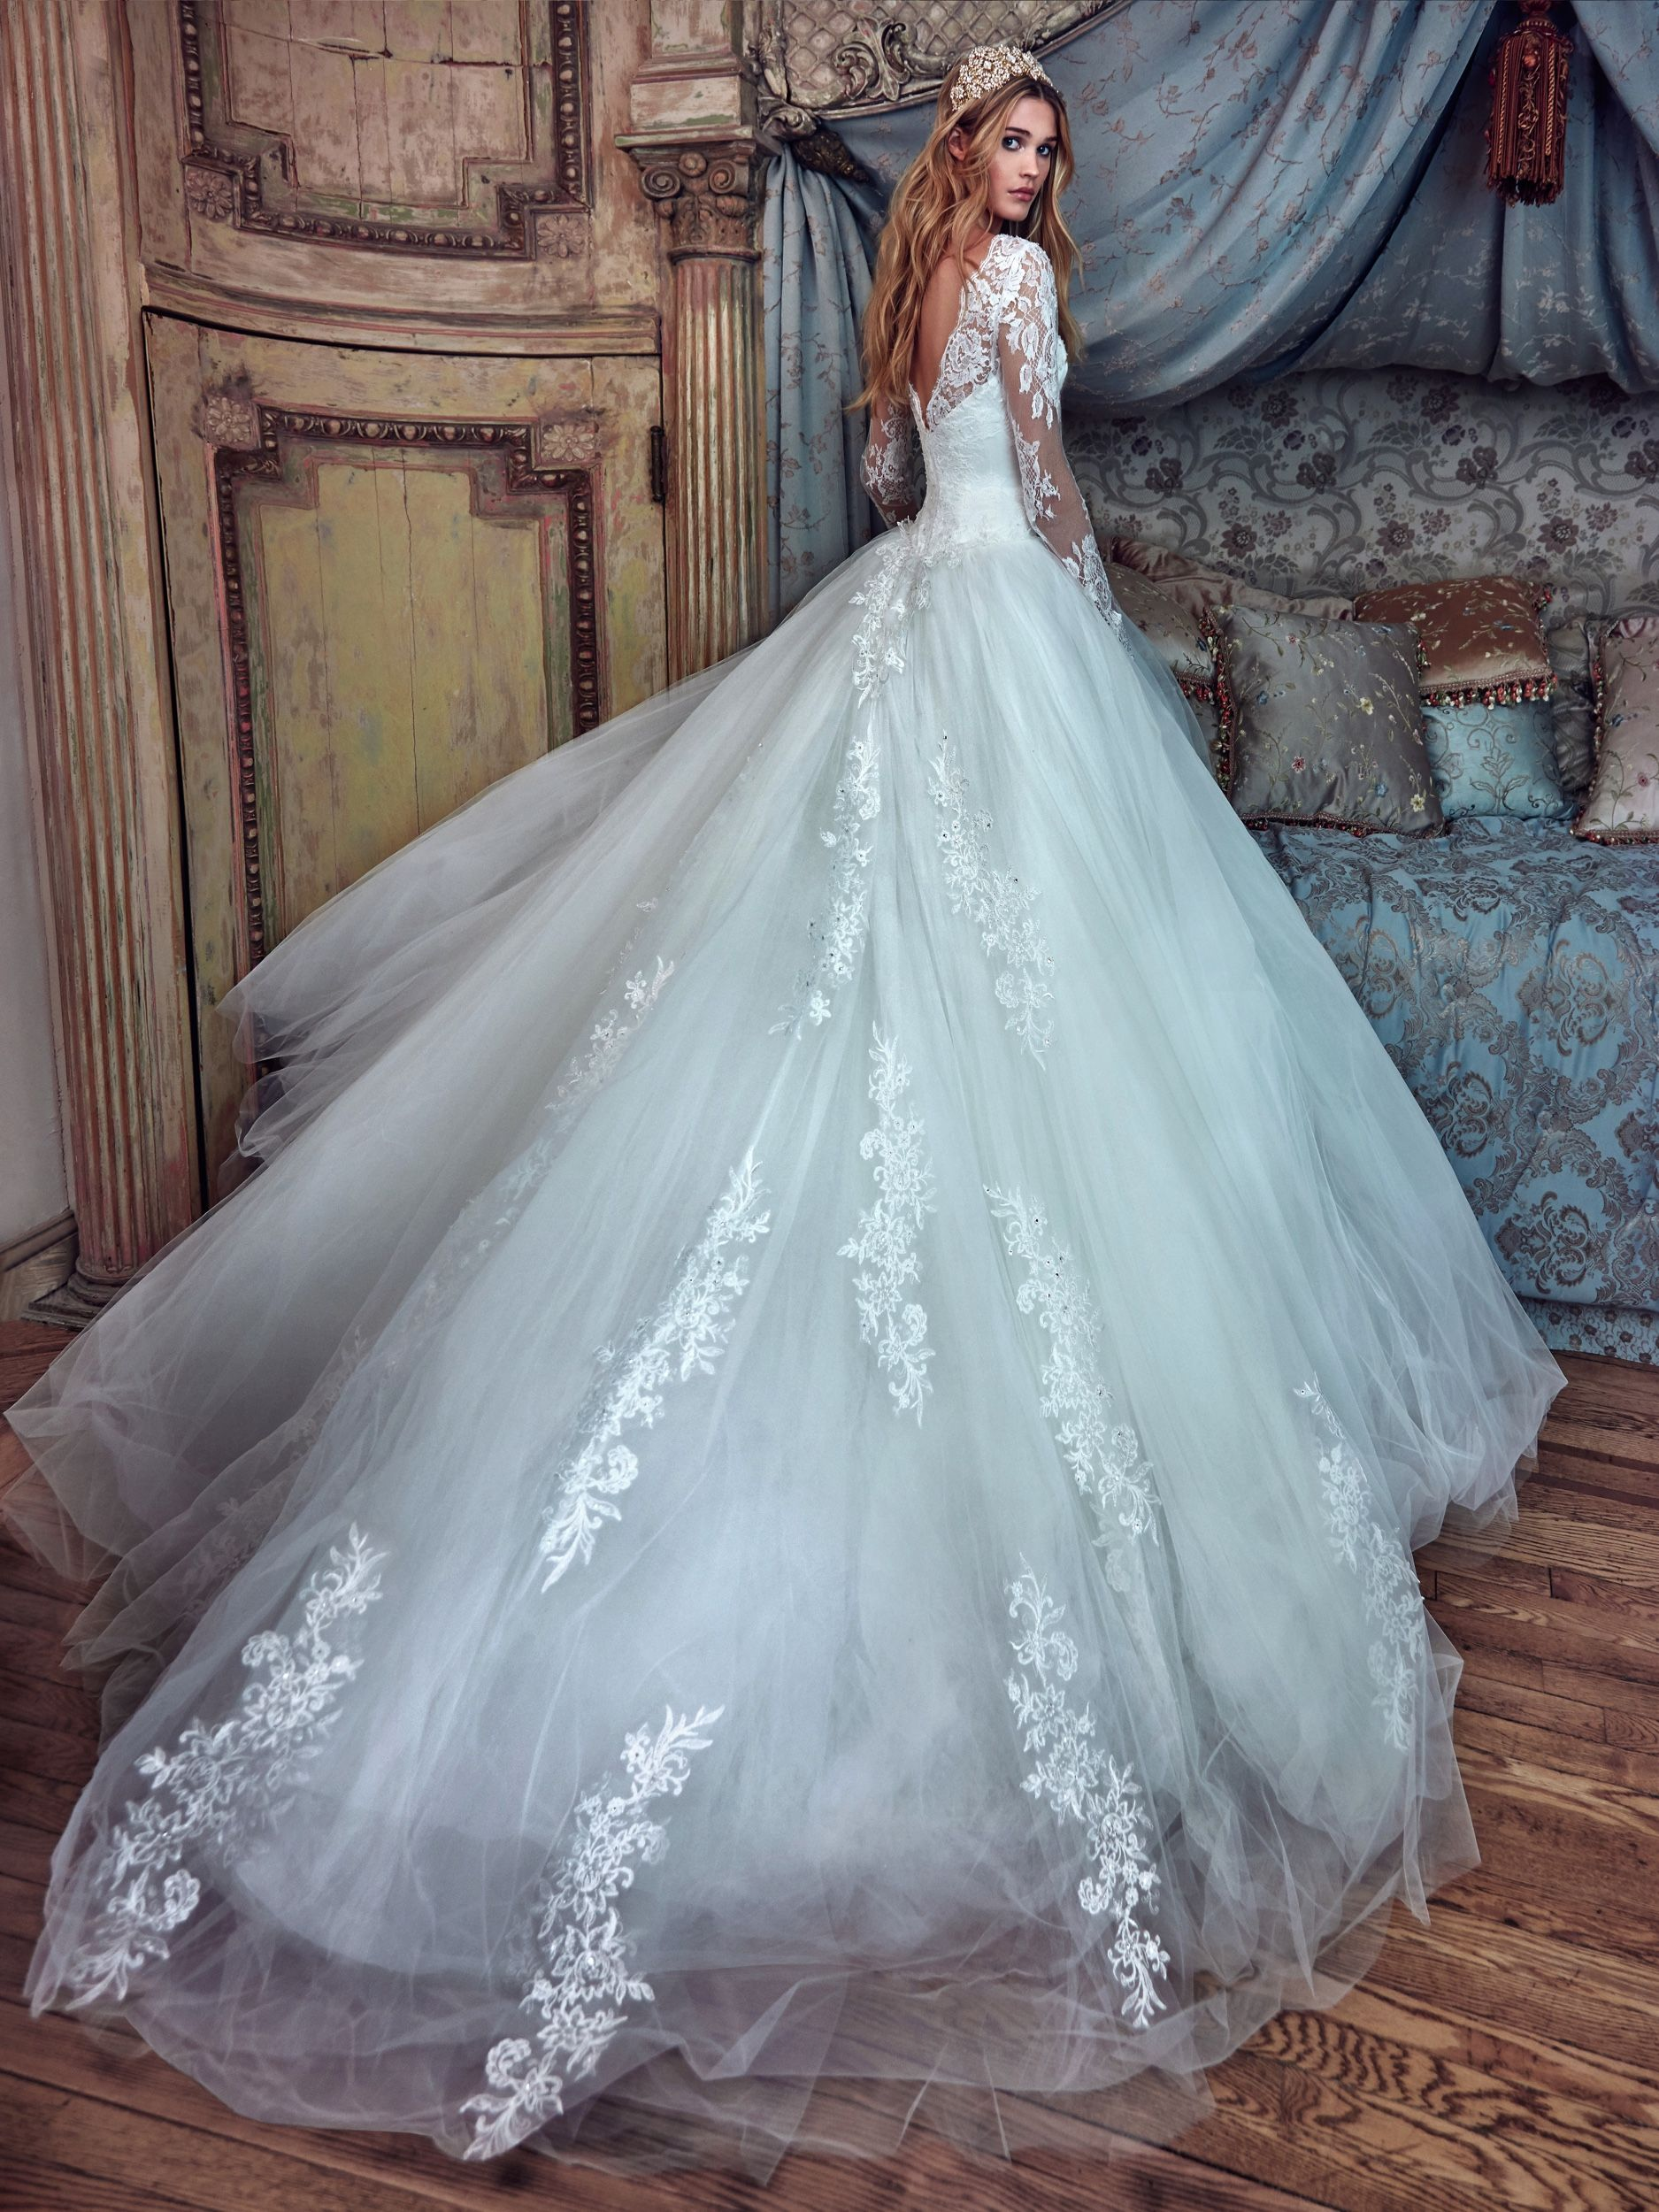 Dress by Galia Lahav | ropa | Pinterest | Vestidos de novia, De ...